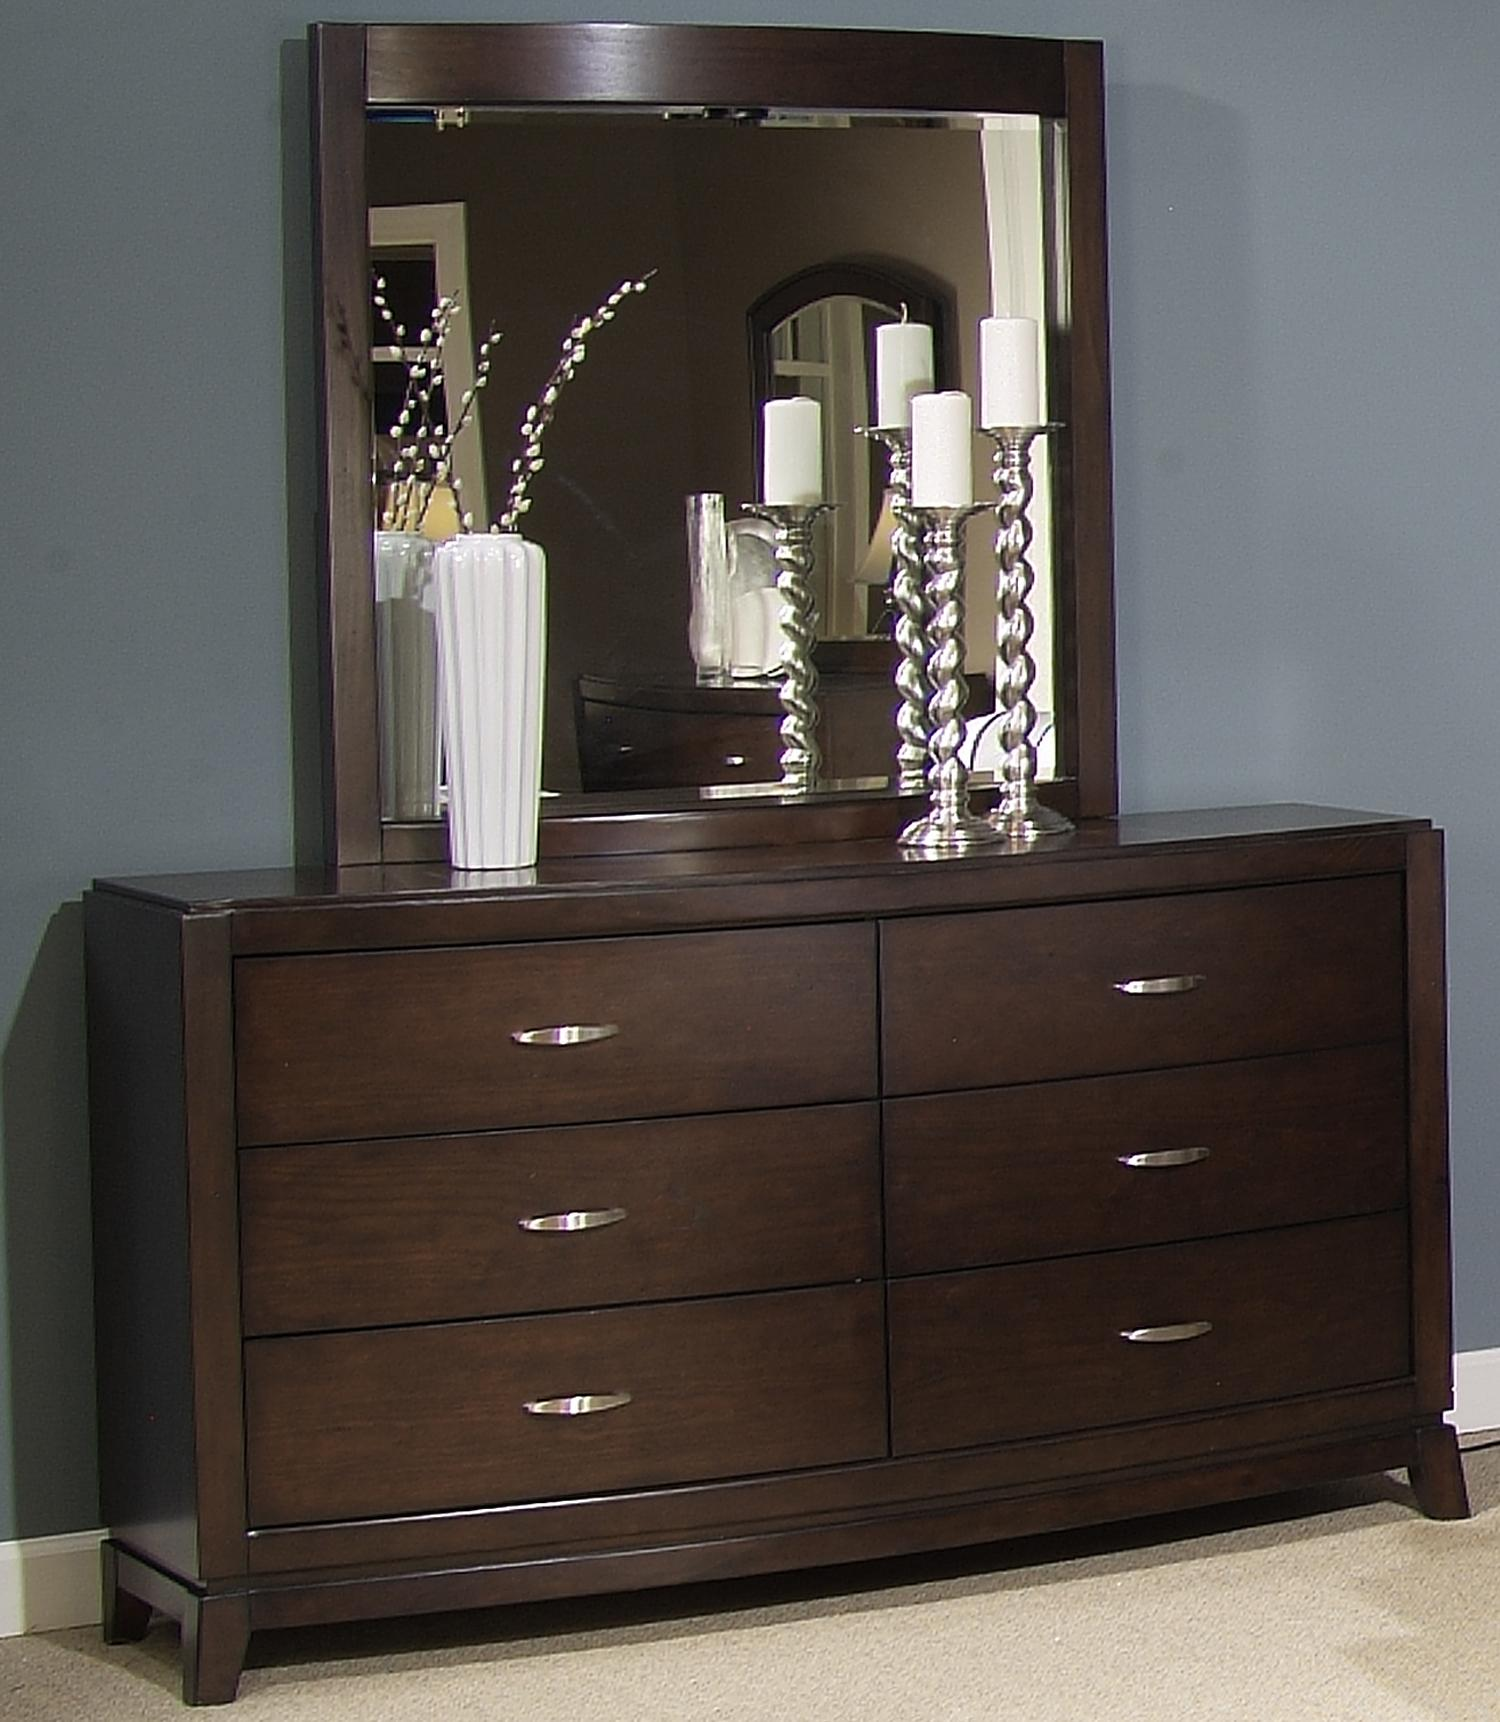 Dresser & Lighted Mirror